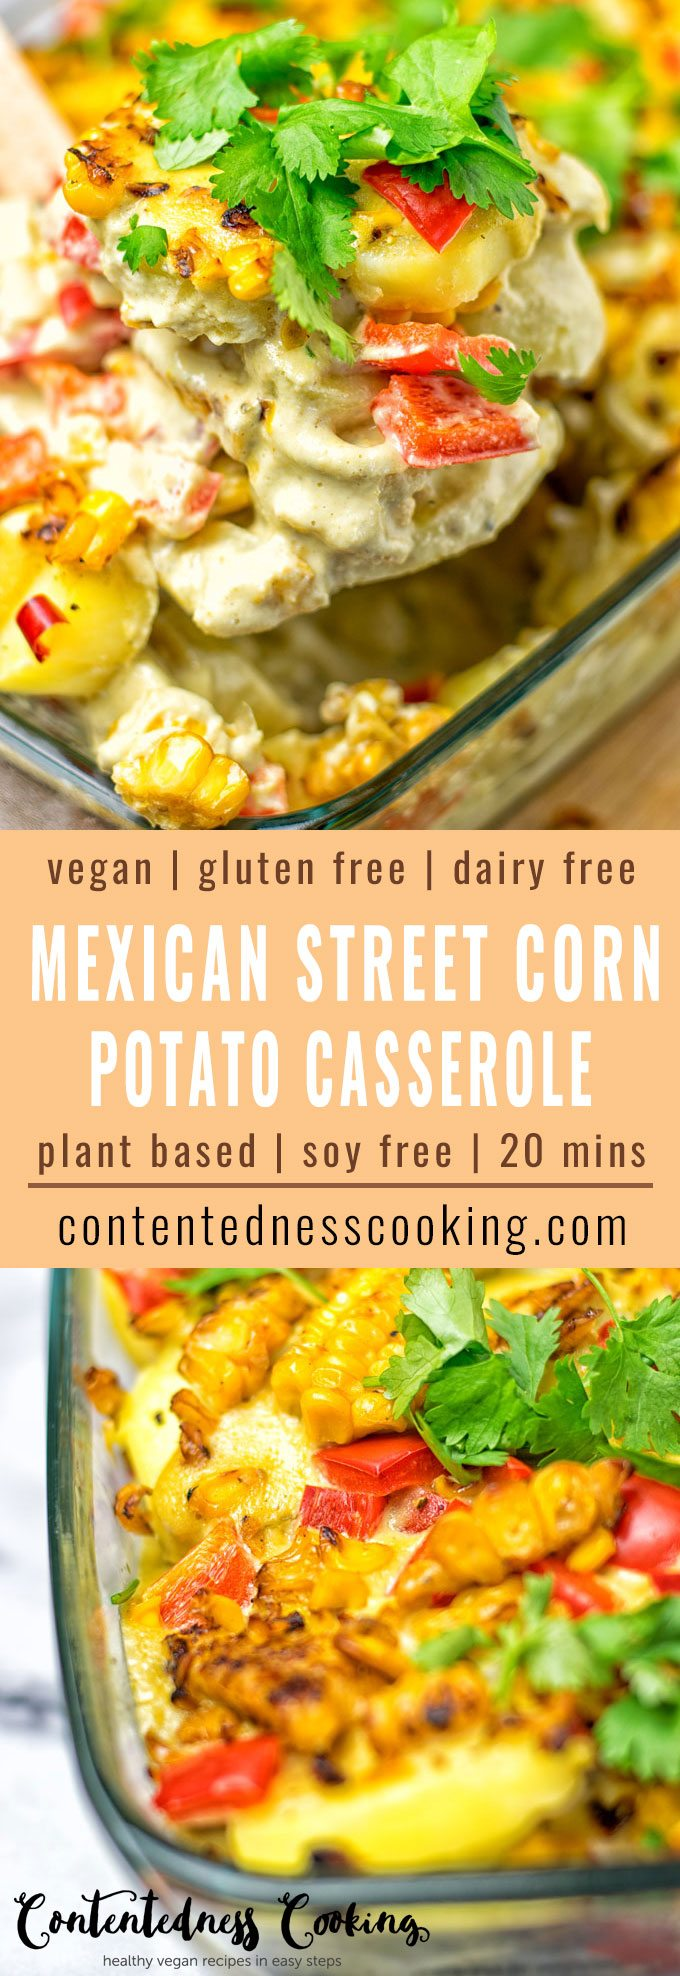 Mexican Street Corn Potato Casserole | #vegan #glutenfree #contentednesscooking #plantbased